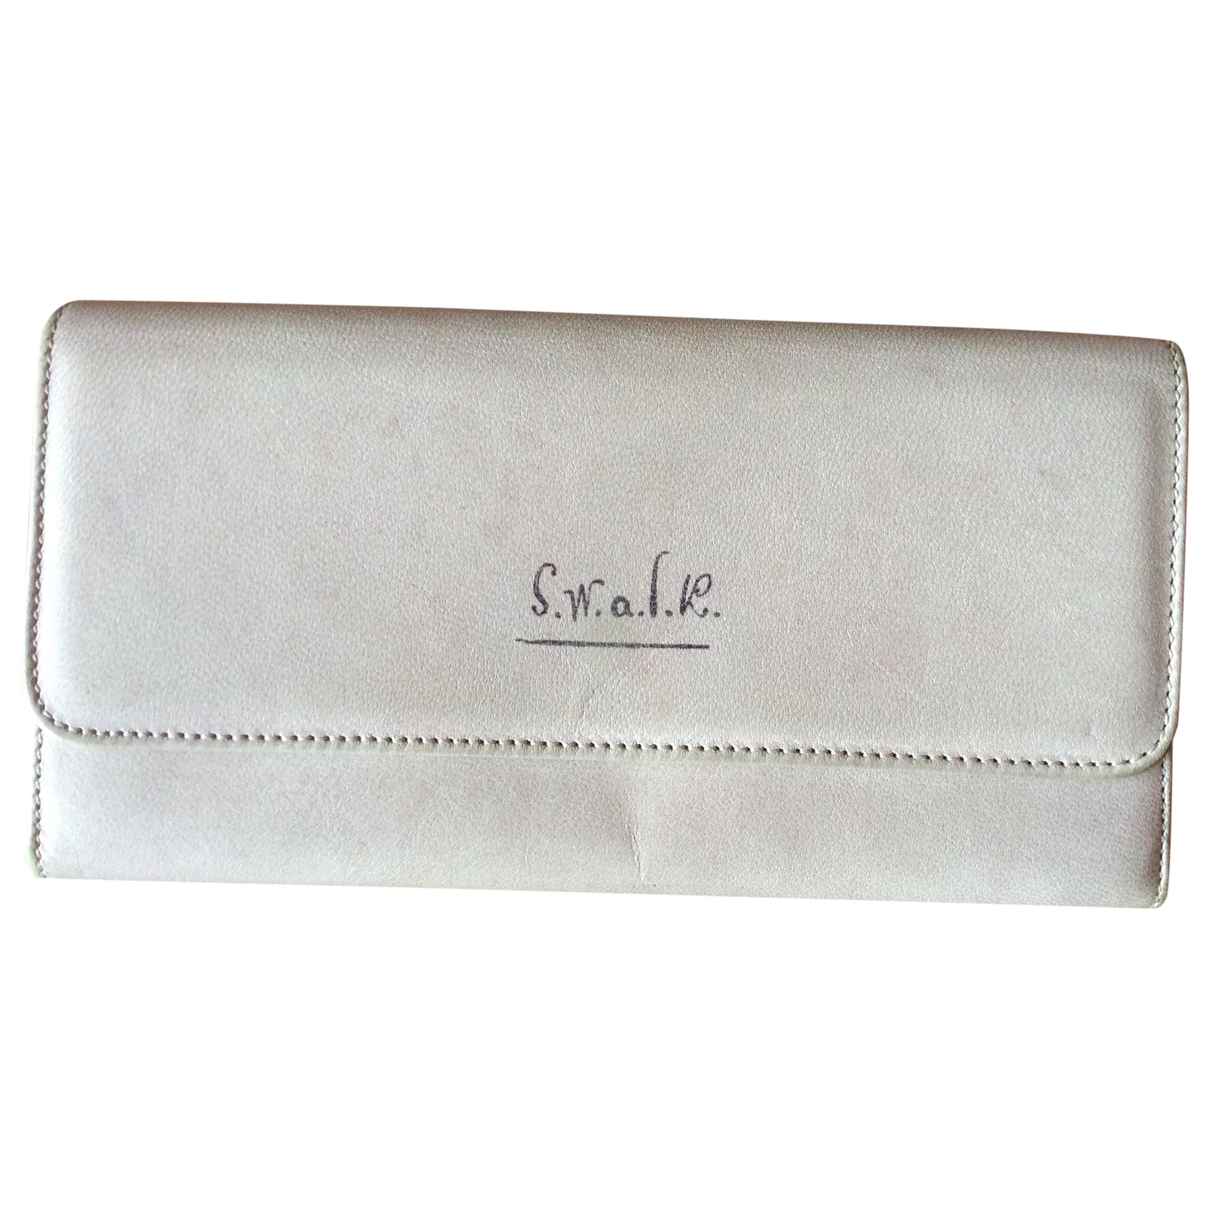 Paul Smith \N Portemonnaie in  Beige Leder